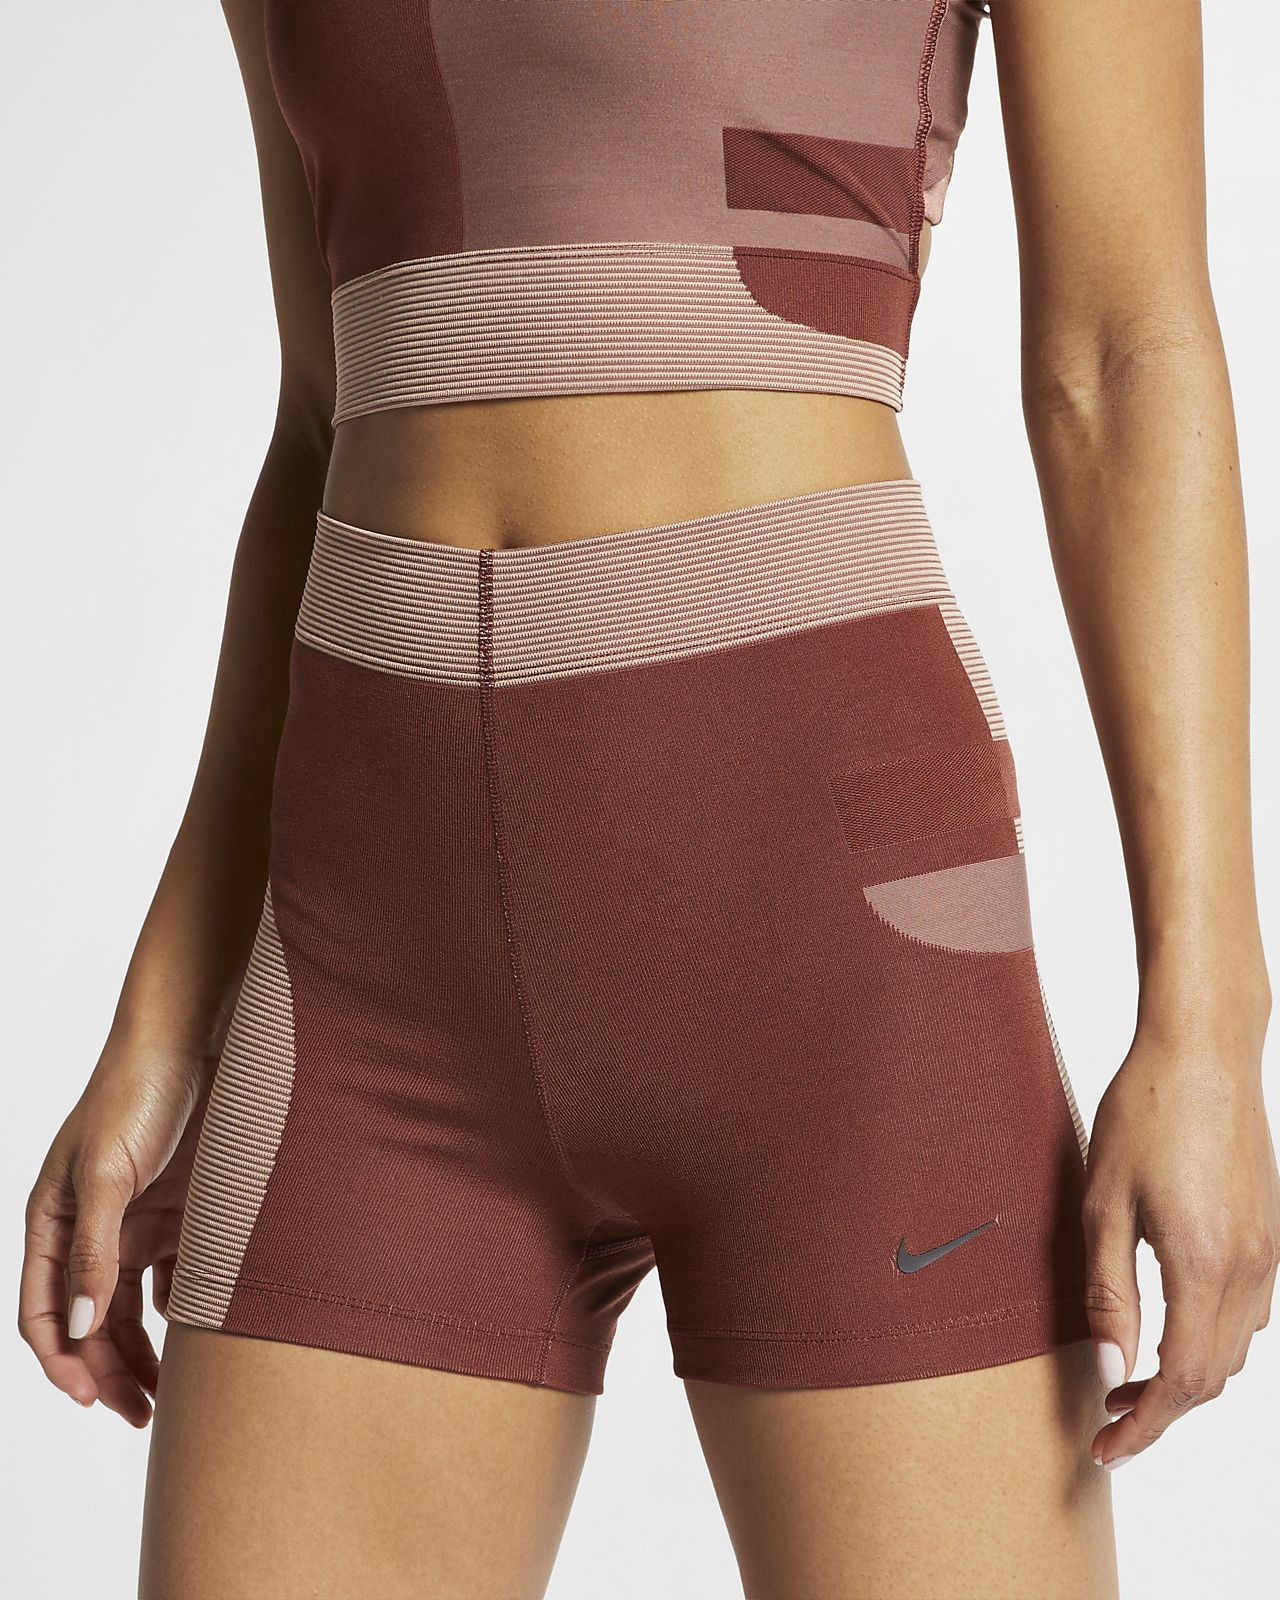 Nike Pro HyperCool Women's 8cm (approx.) Shorts